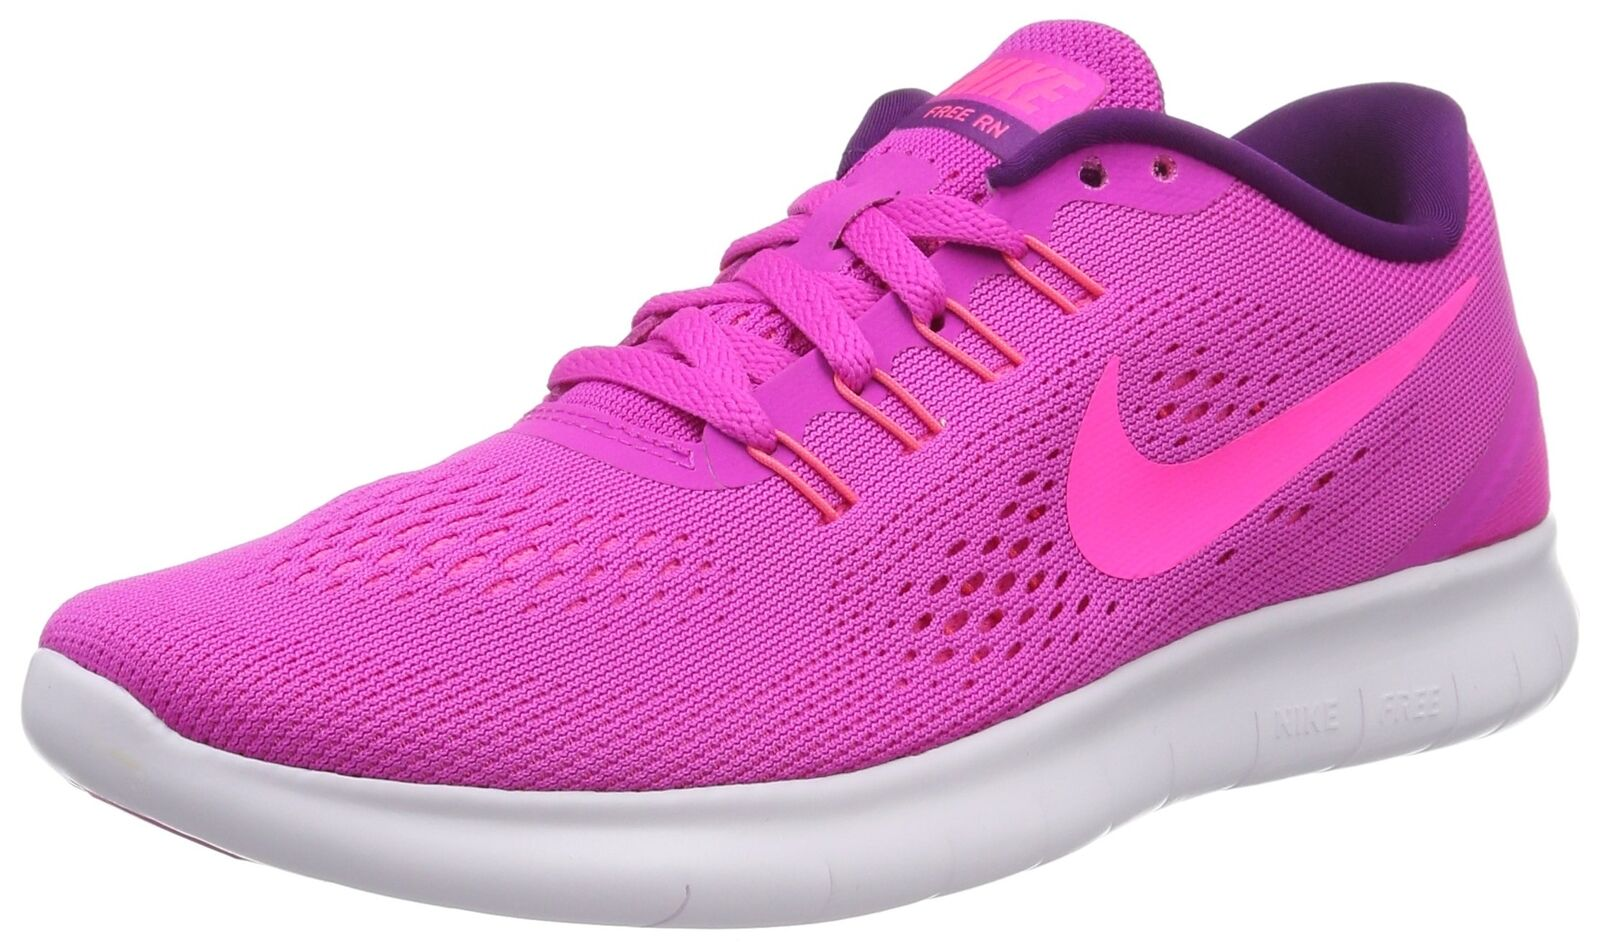 NIKE - Free RN - 831509601 Fire Pink bluee Glow Light purple Pink Blast 7